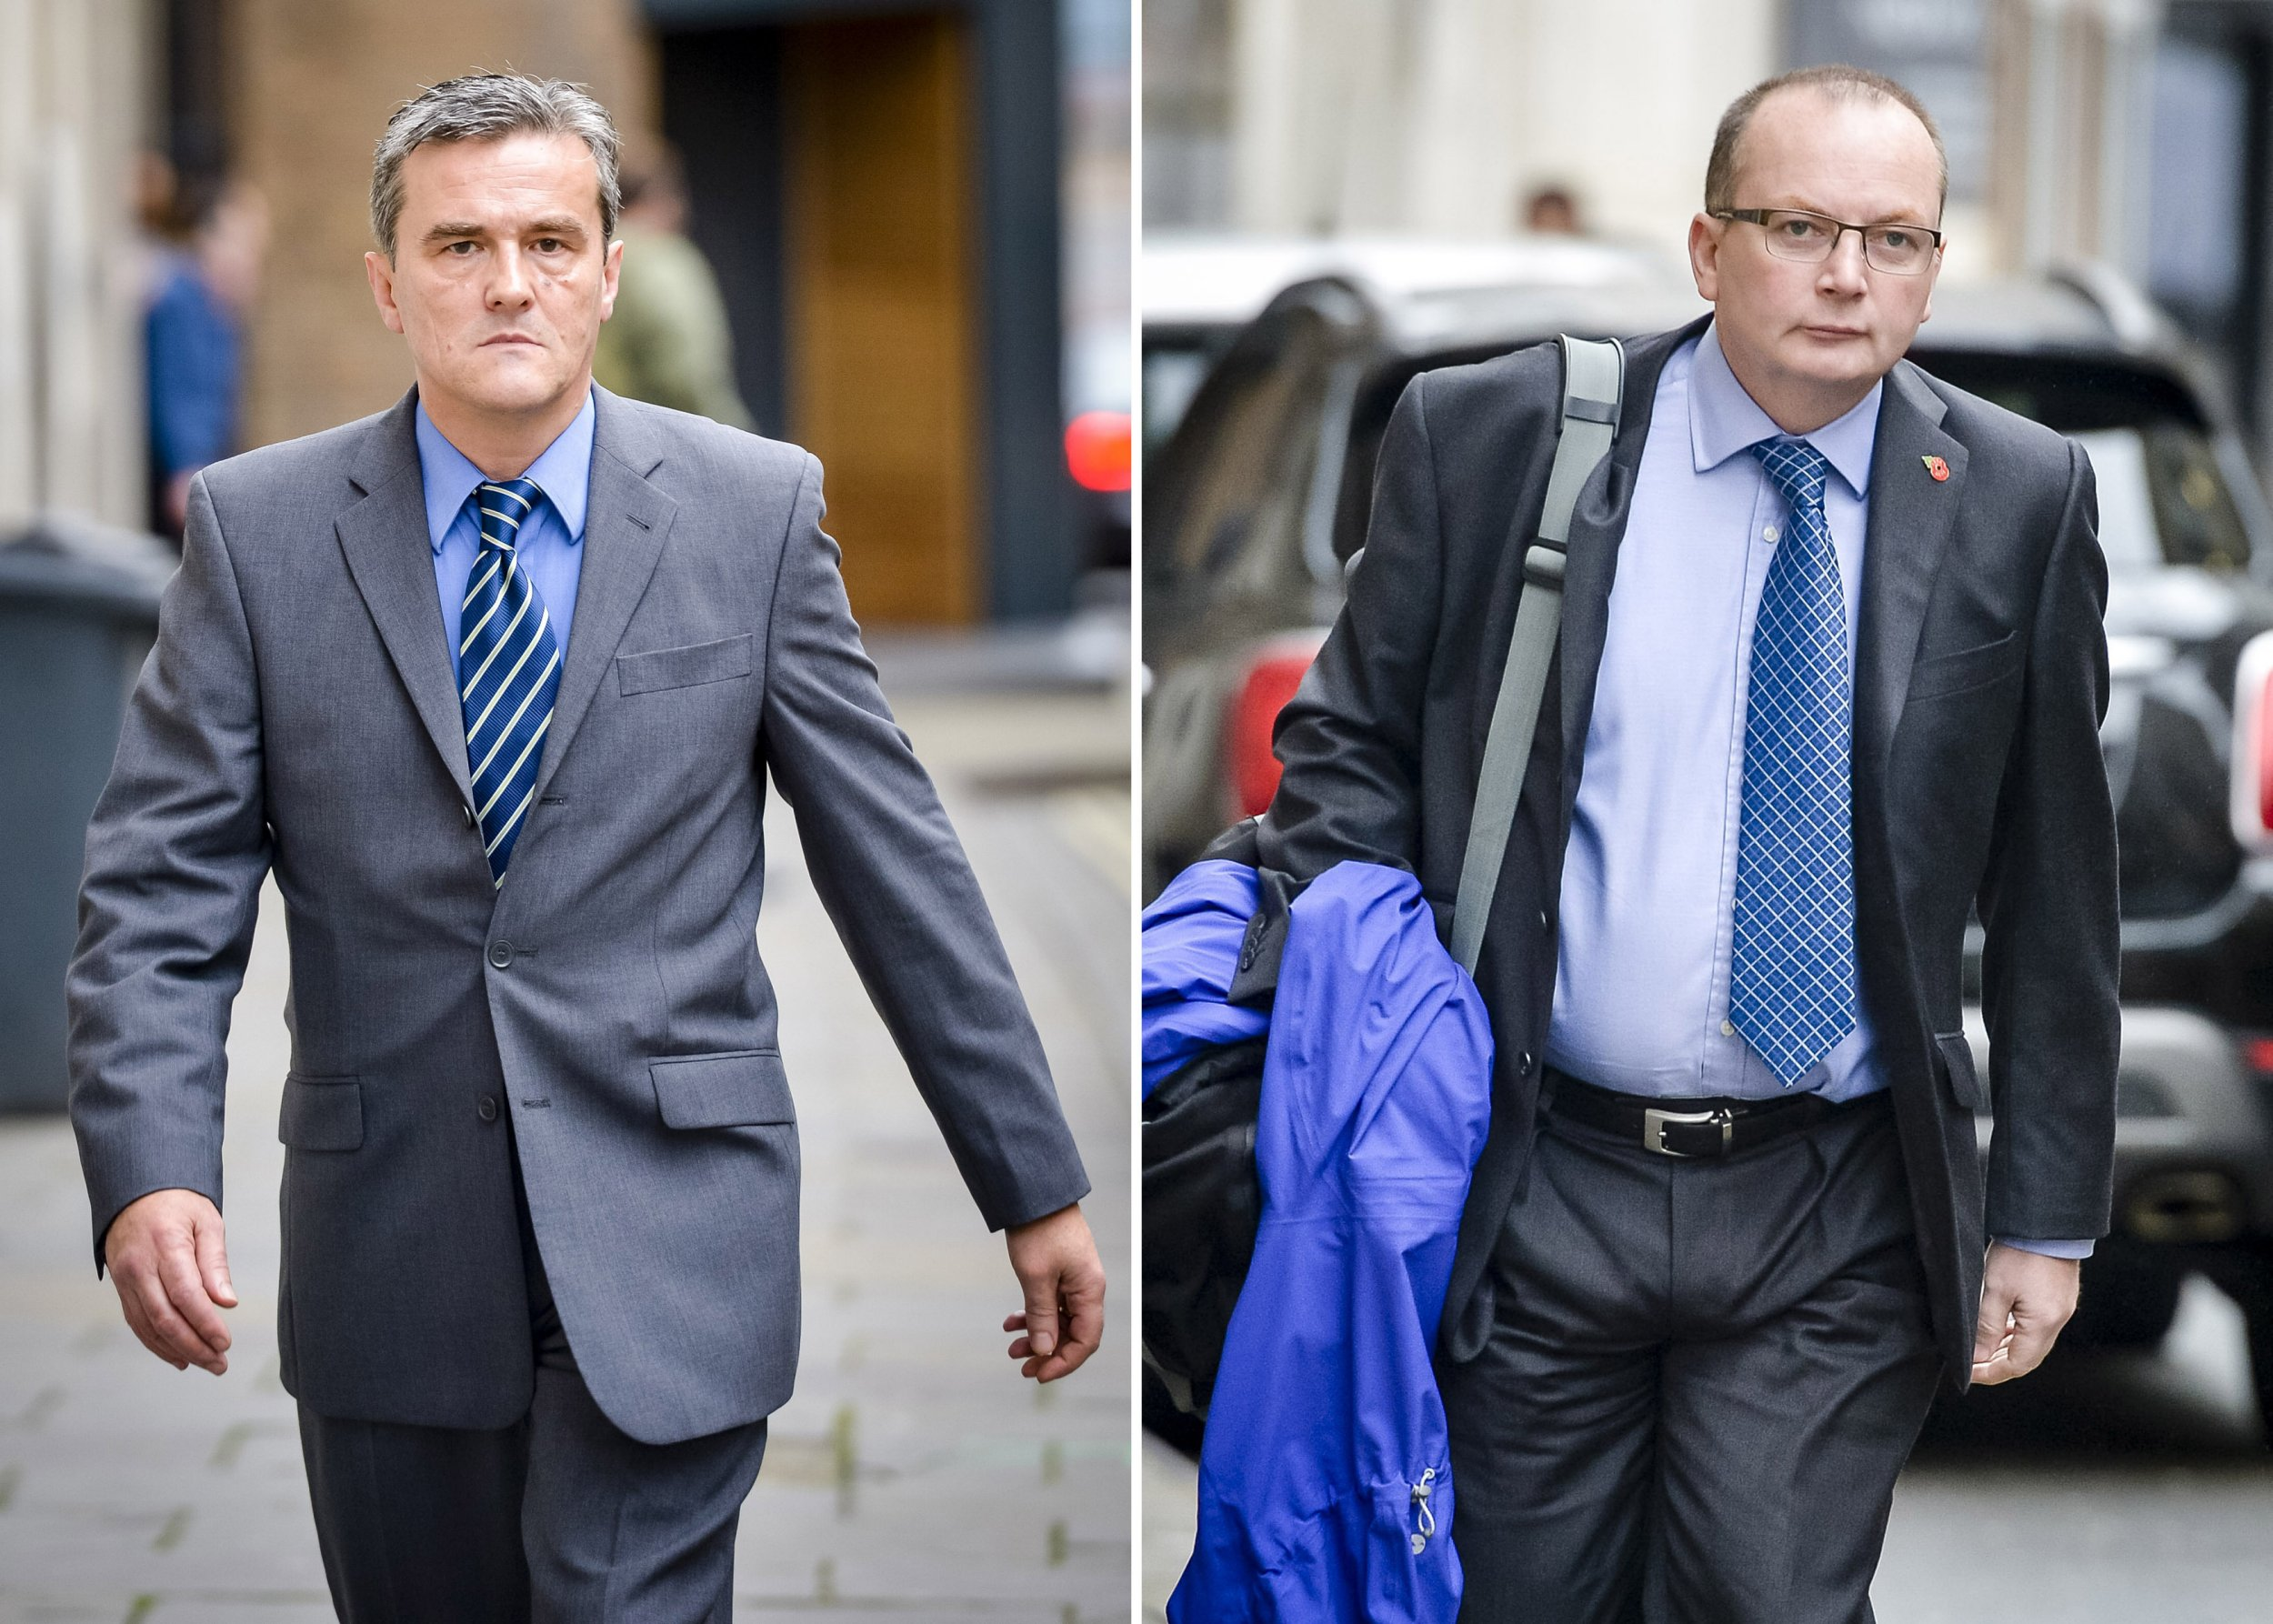 File photos of PCSO Andrew Passmore (left) and police constable Kevin Duffy of Avon and Somerset Police. A police officer and a community support officer are due to be sentenced after being convicted of misconduct following the vigilante murder of a disabled man. PRESS ASSOCIATION Photo. Issue date: Tuesday February 9, 2016. Pc Kevin Duffy, 52, and PCSO Andrew Passmore, 56, were found guilty of misconduct in a public office in connection with the death of Bijan Ebrahimi in Bristol in 2013. Mr Ebrahimi, 44, was beaten to death and his body set on fire by neighbour Lee James, who wrongly believed he was a paedophile. Bristol Crown Court heard Duffy saw Mr Ebrahimi as a liar and a nuisance despite a toxic situation at his home which called for pro-active policing. See PA story COURTS Officers. Photo credit should read: Ben Birchall/PA Wire